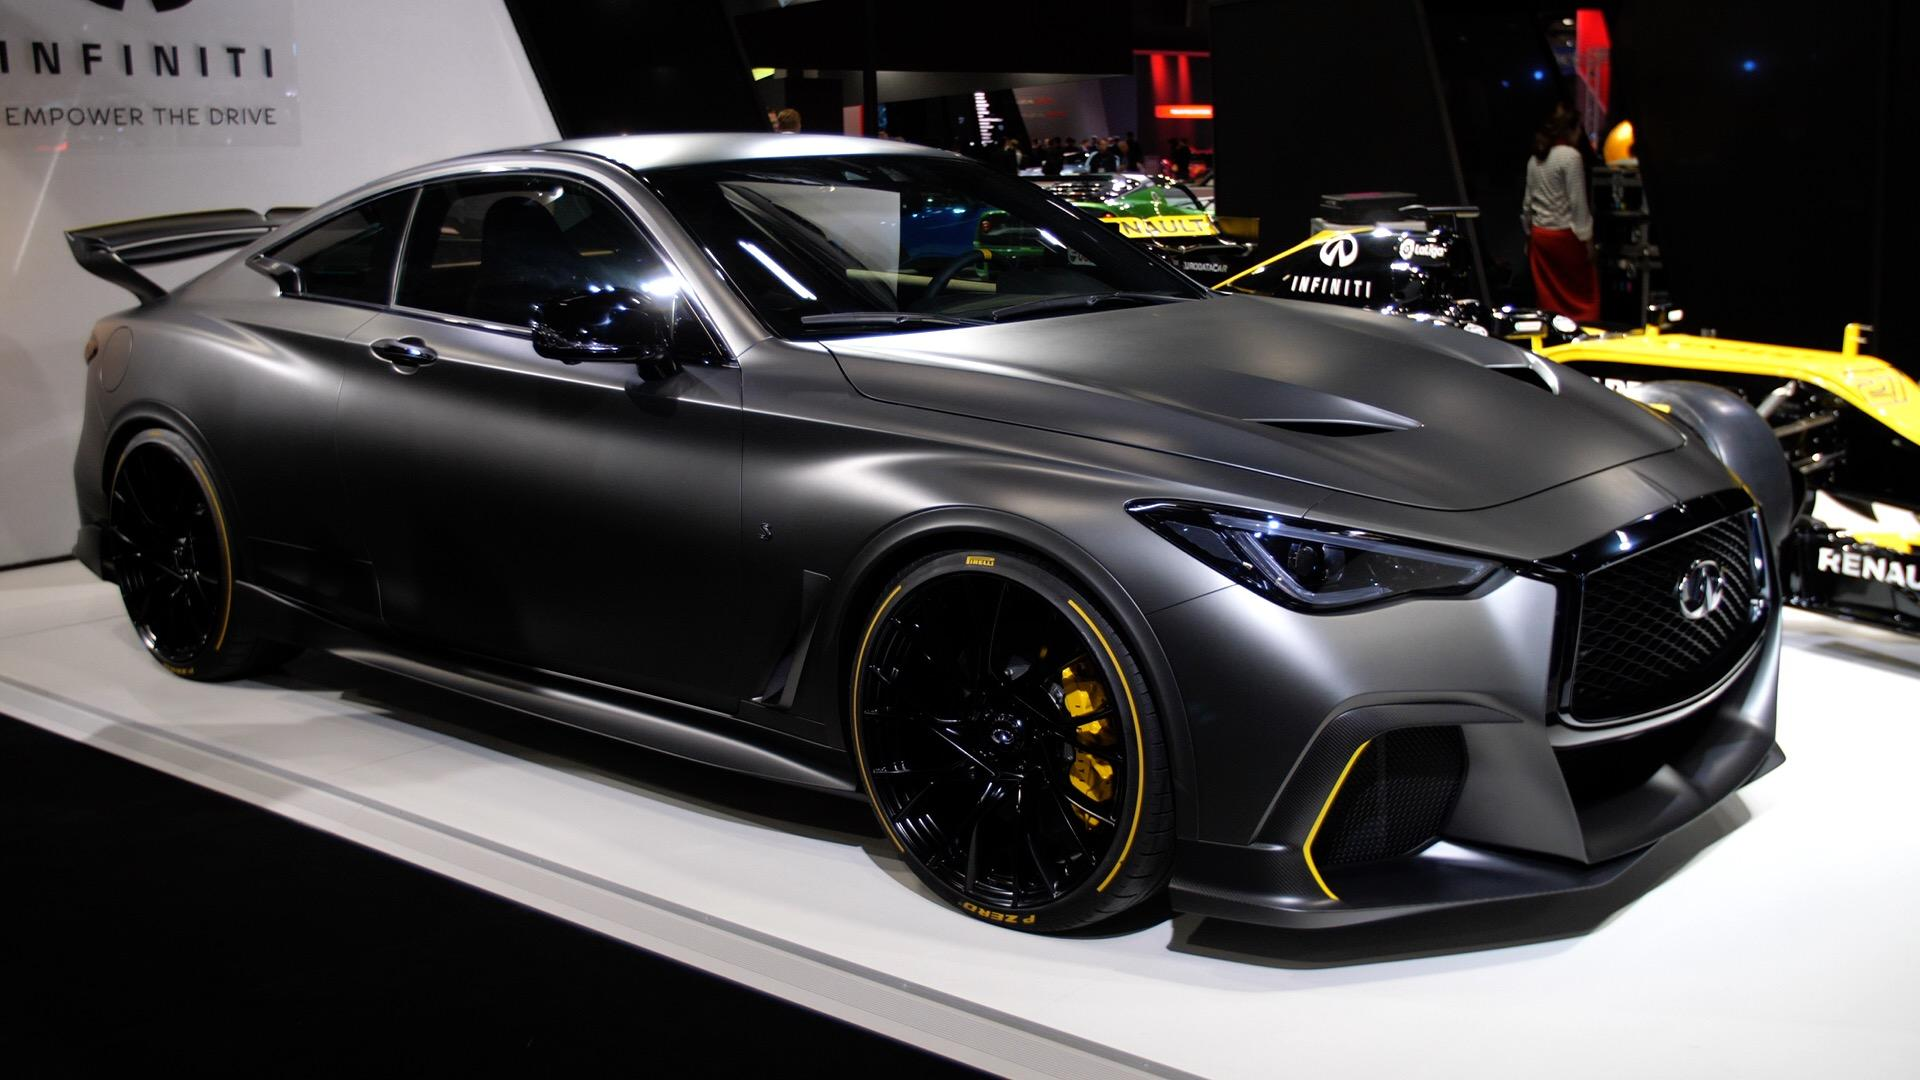 Video: Infiniti Project Black S incorporates Formula 1 tech for its latest concept